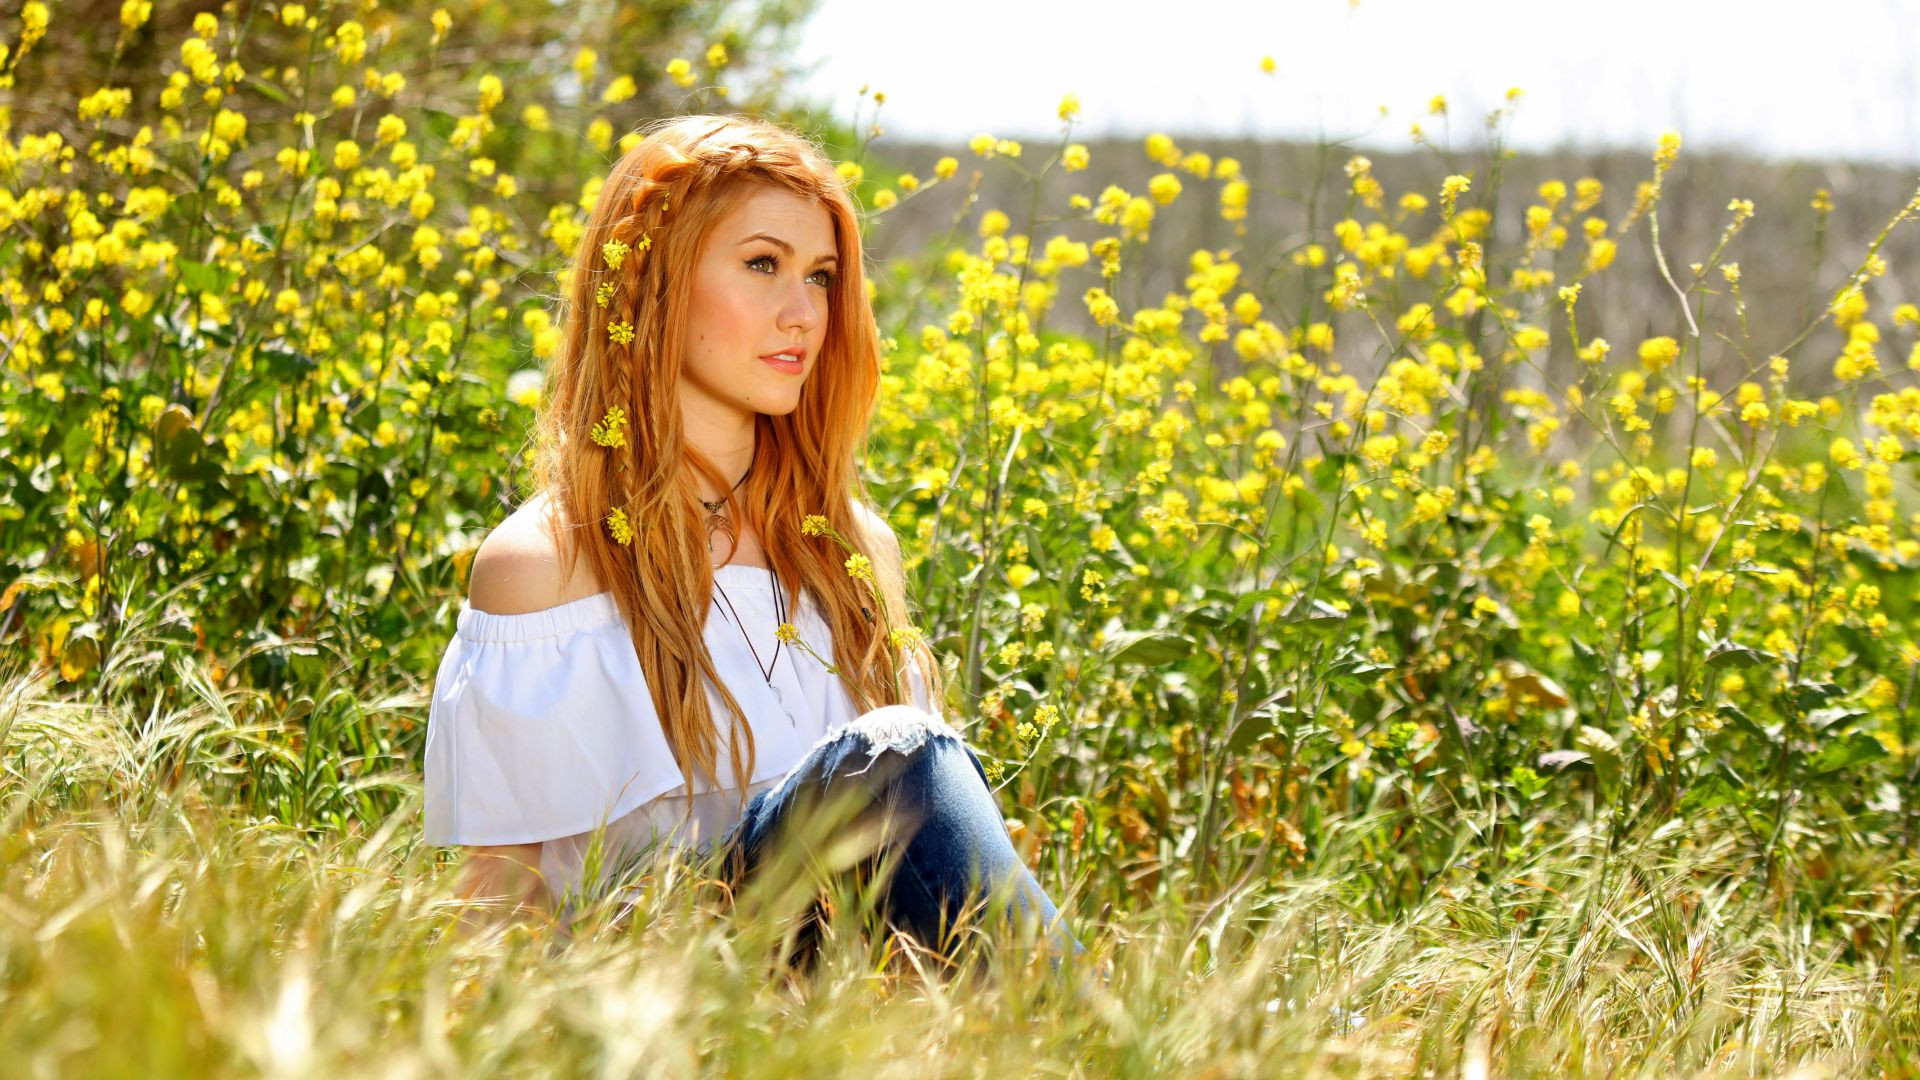 Katherine Mcnamara, photo, flowers, grass, 5k (horizontal)